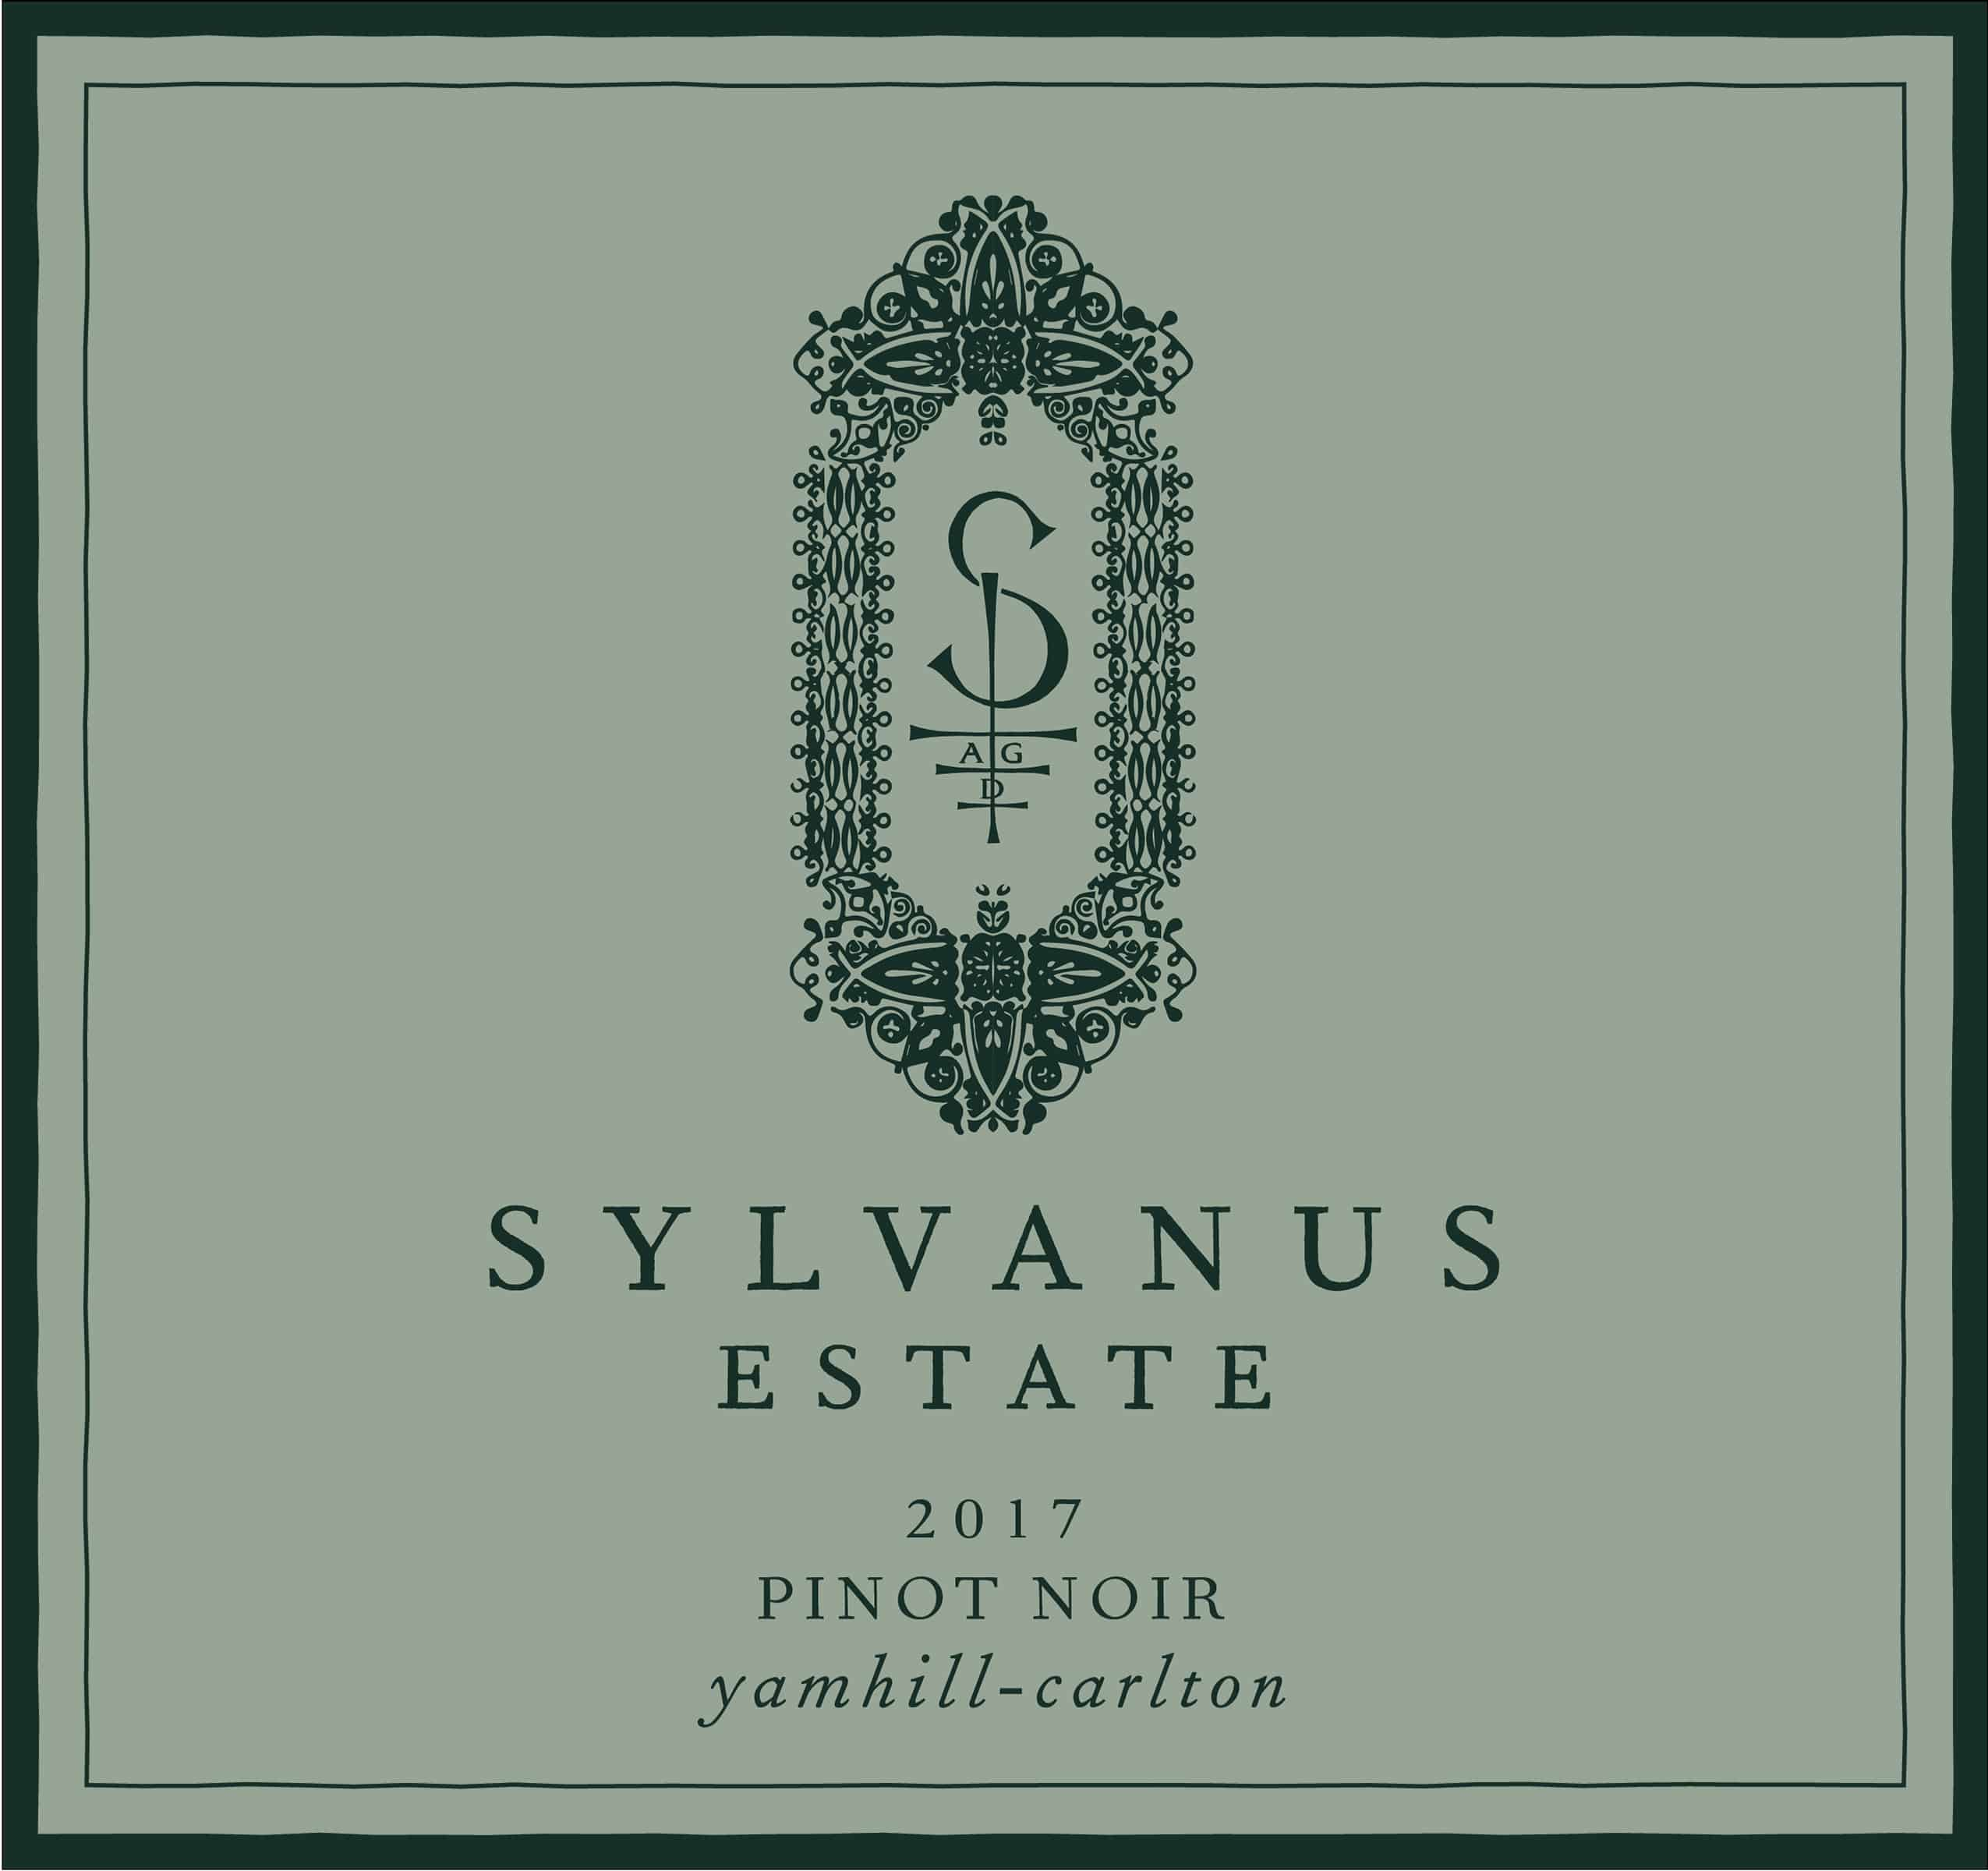 sylvanus_estate_15pn_final